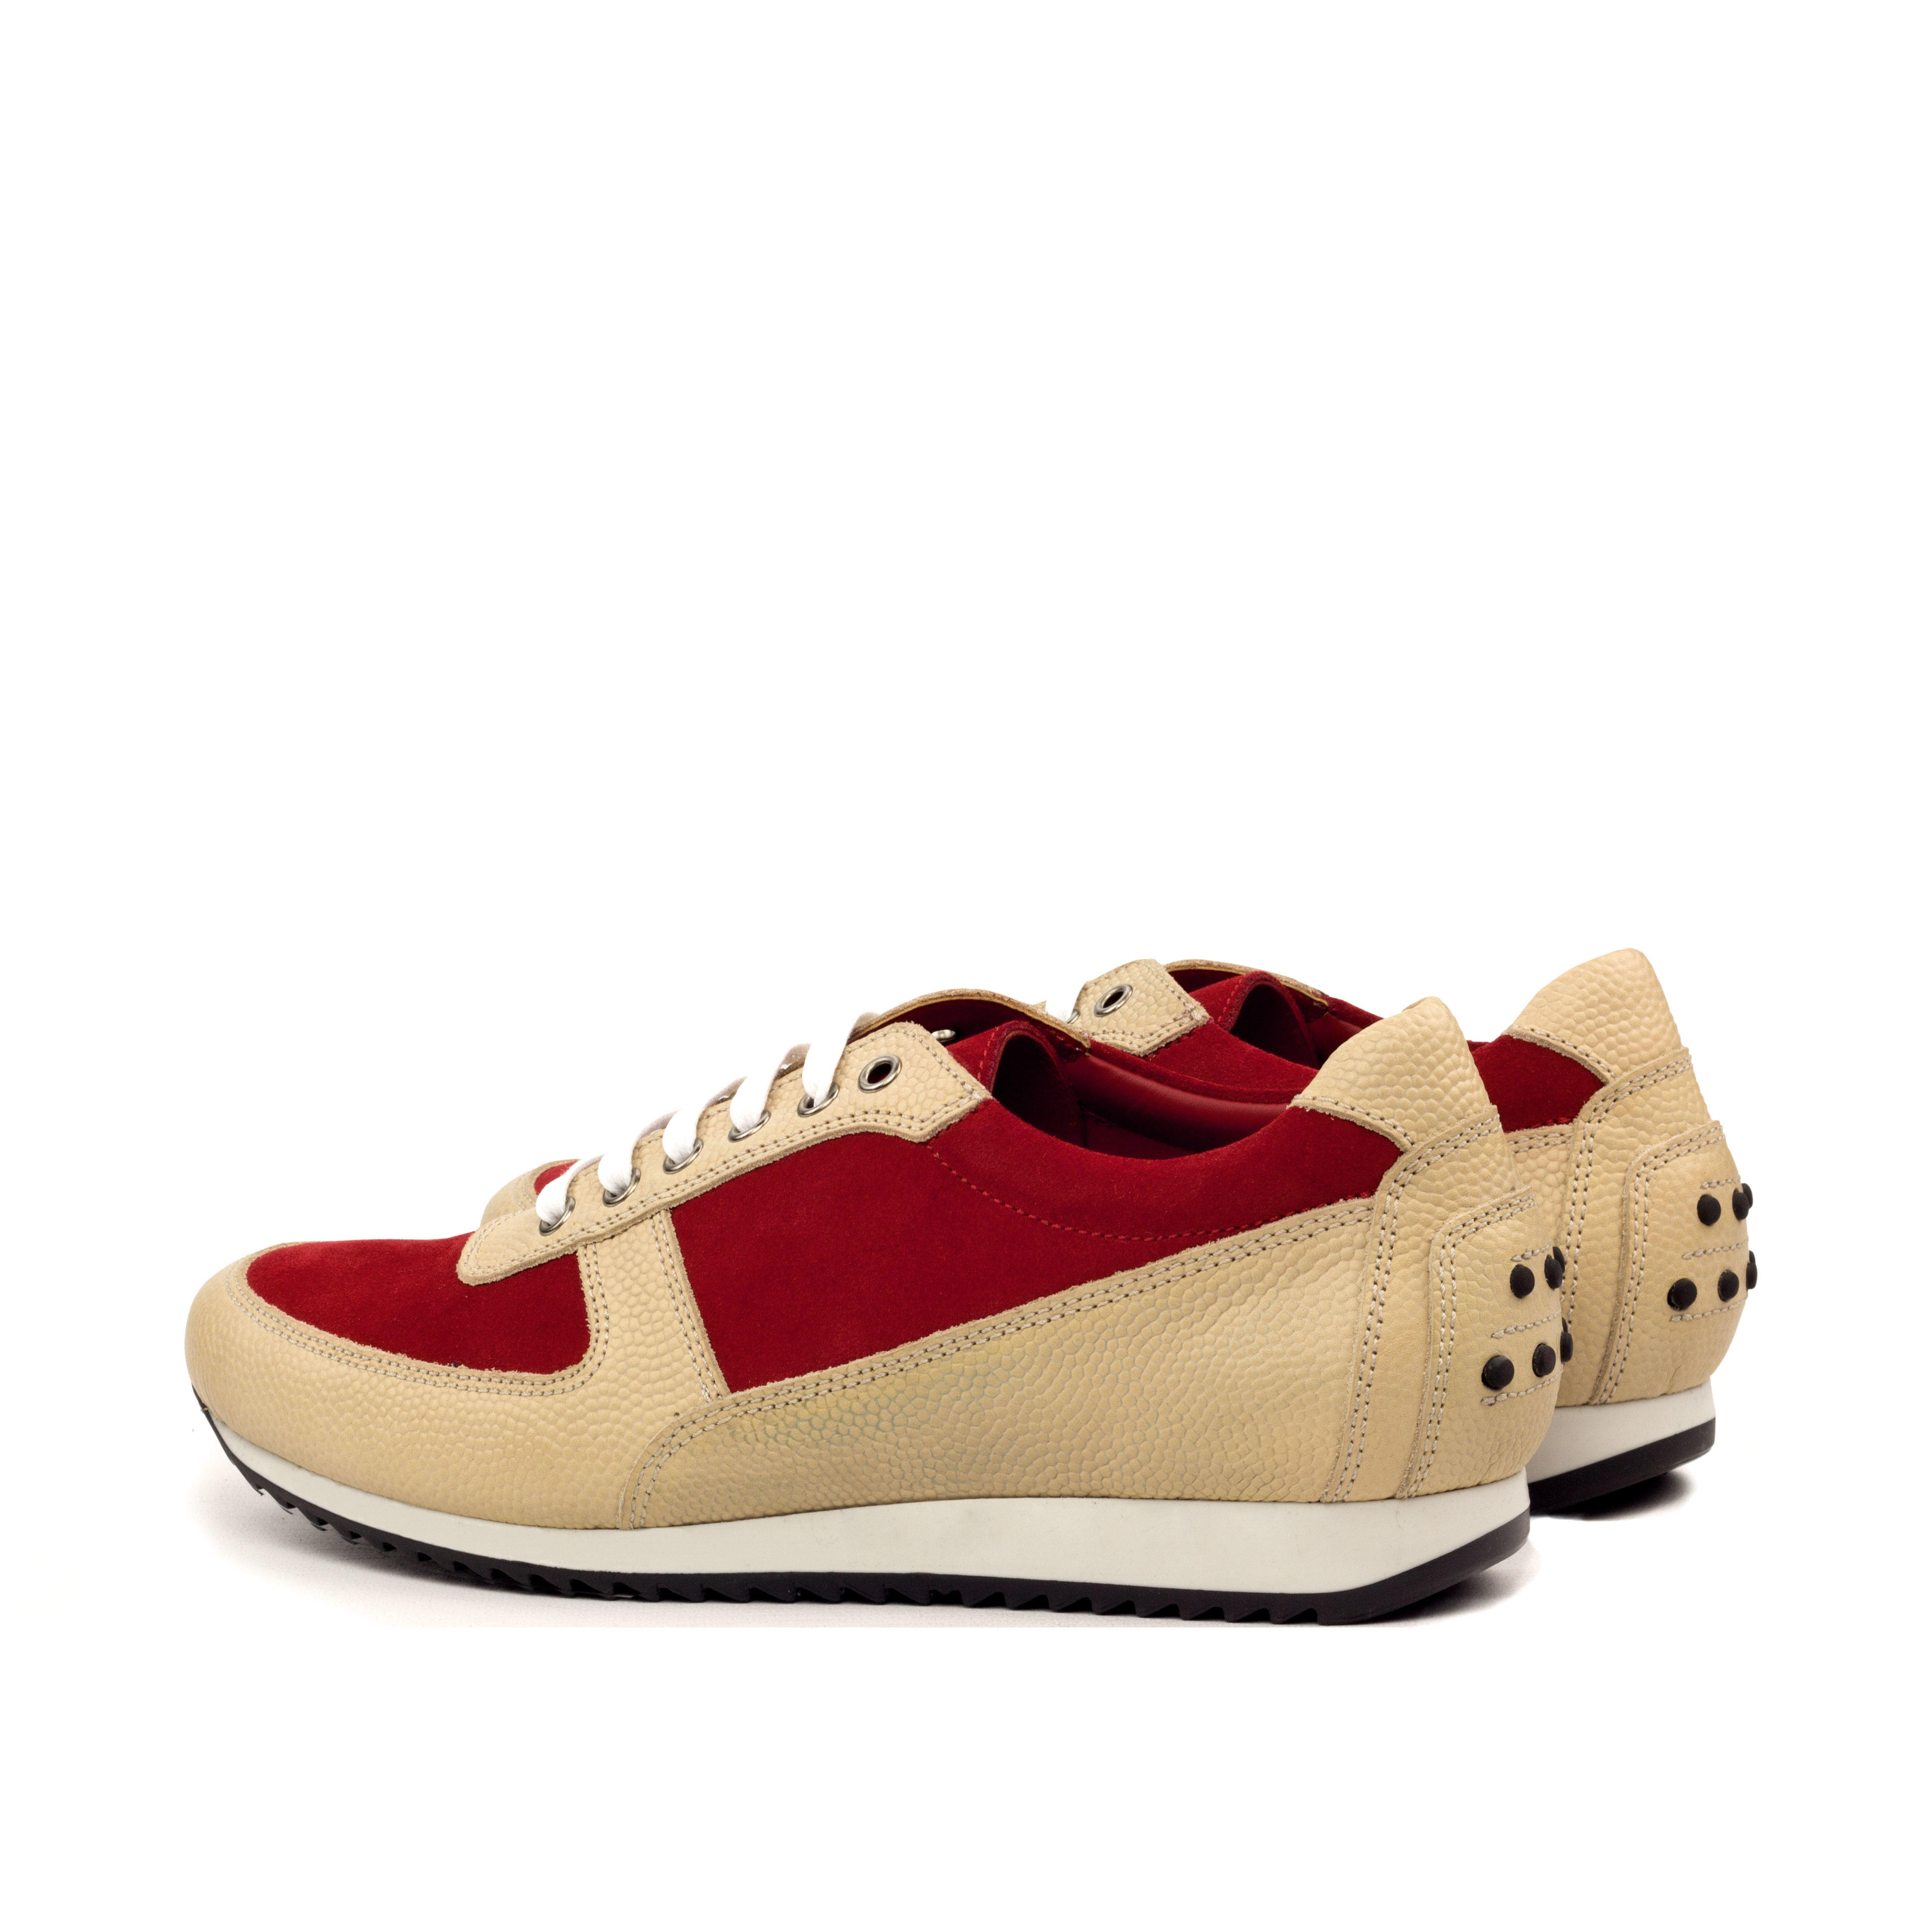 MANOR OF LONDON 'The Runner' Fawn Pebble Grain & Red Suede Trainer Luxury Custom Initials Monogrammed Back Side View